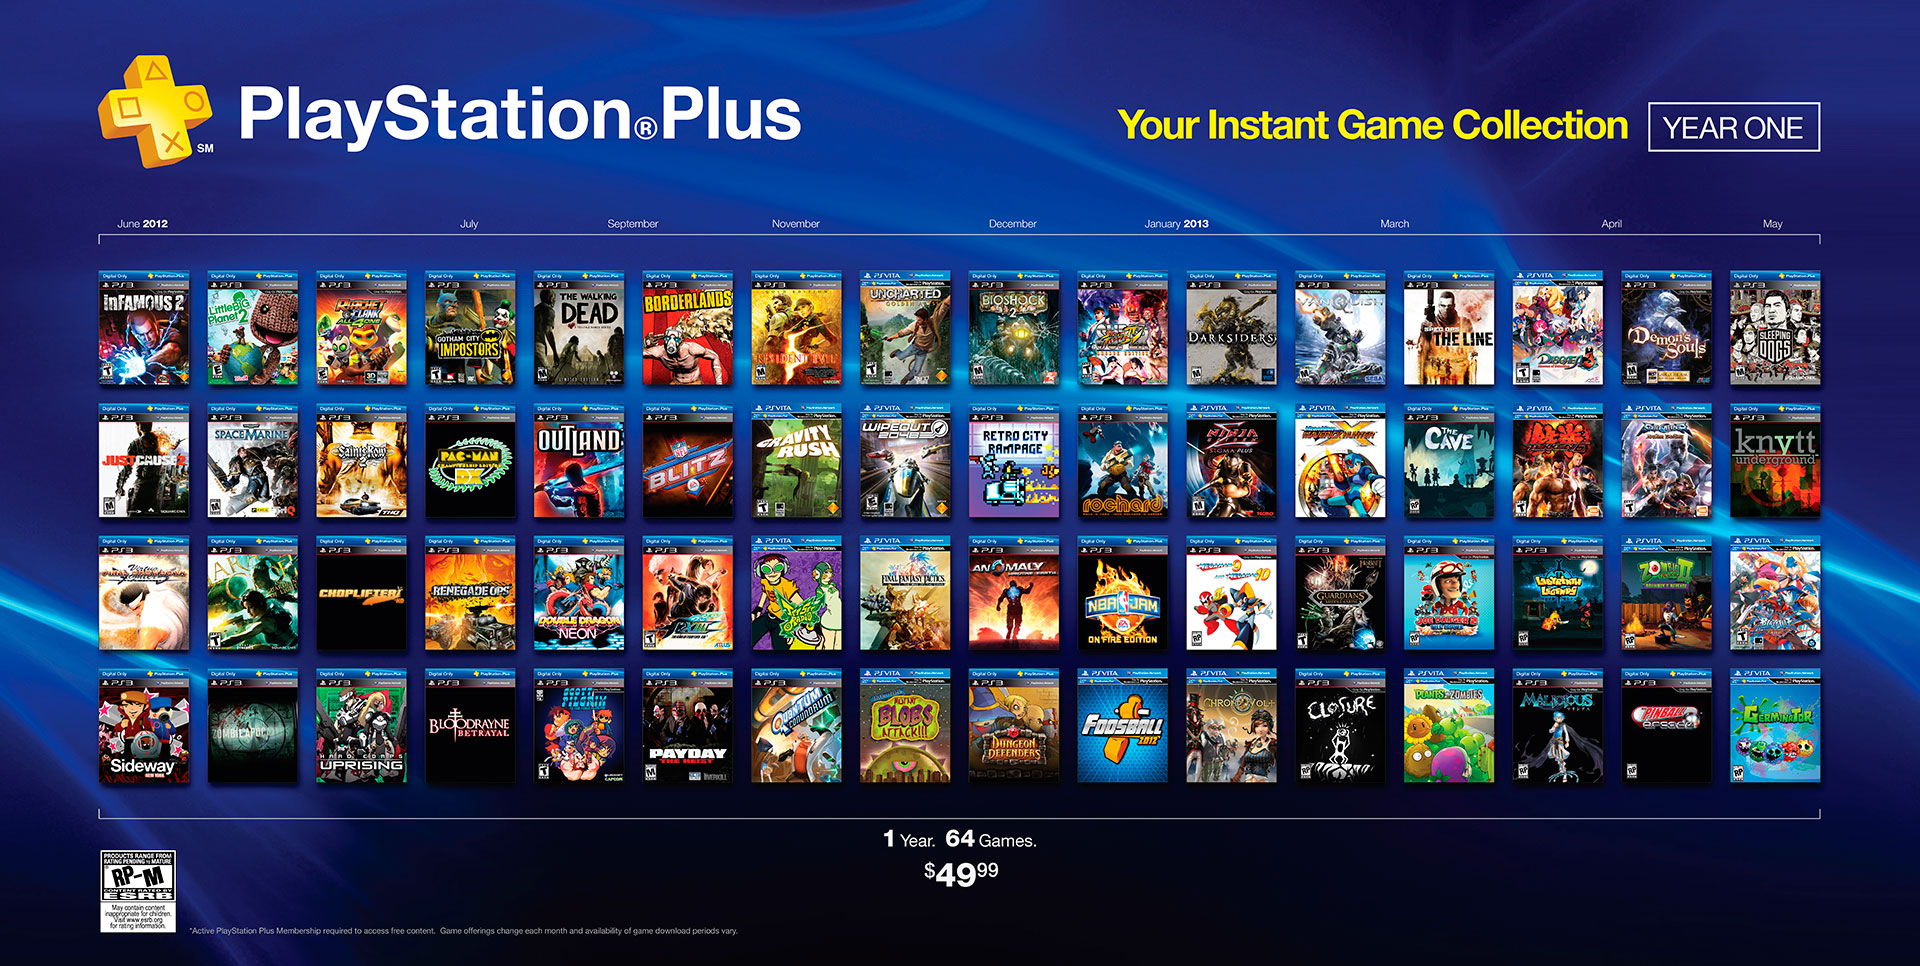 All New Games On Ps3 : Free games the playstation plus network advantage cheats